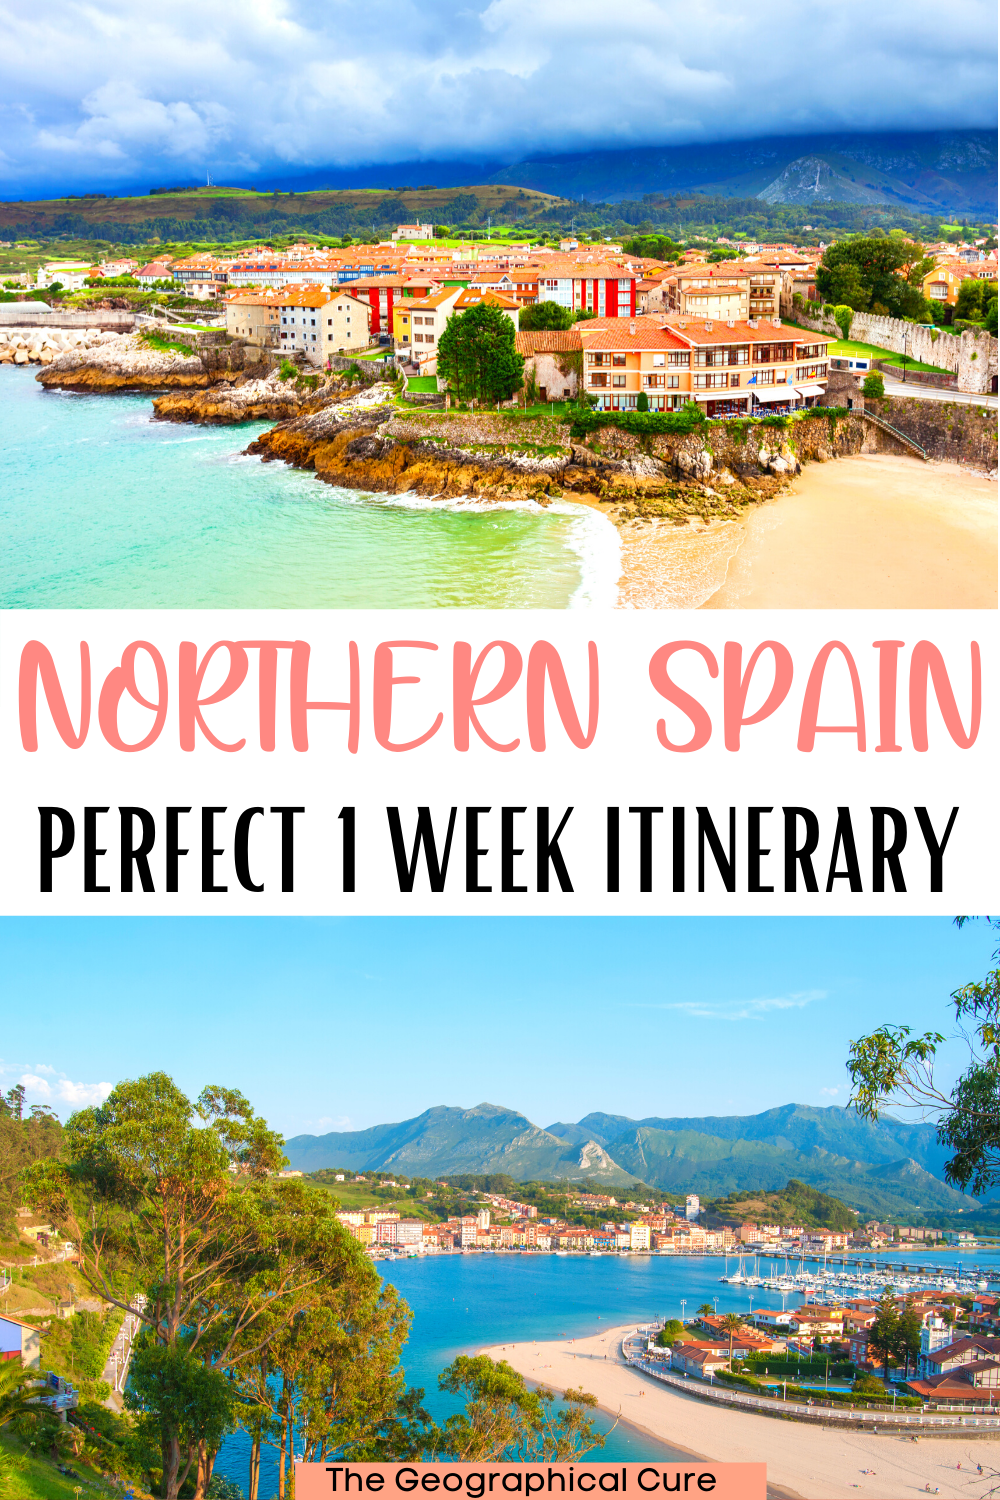 ultimate one week itinerary for visiting northern Spain, with all the must see sites and landmarks